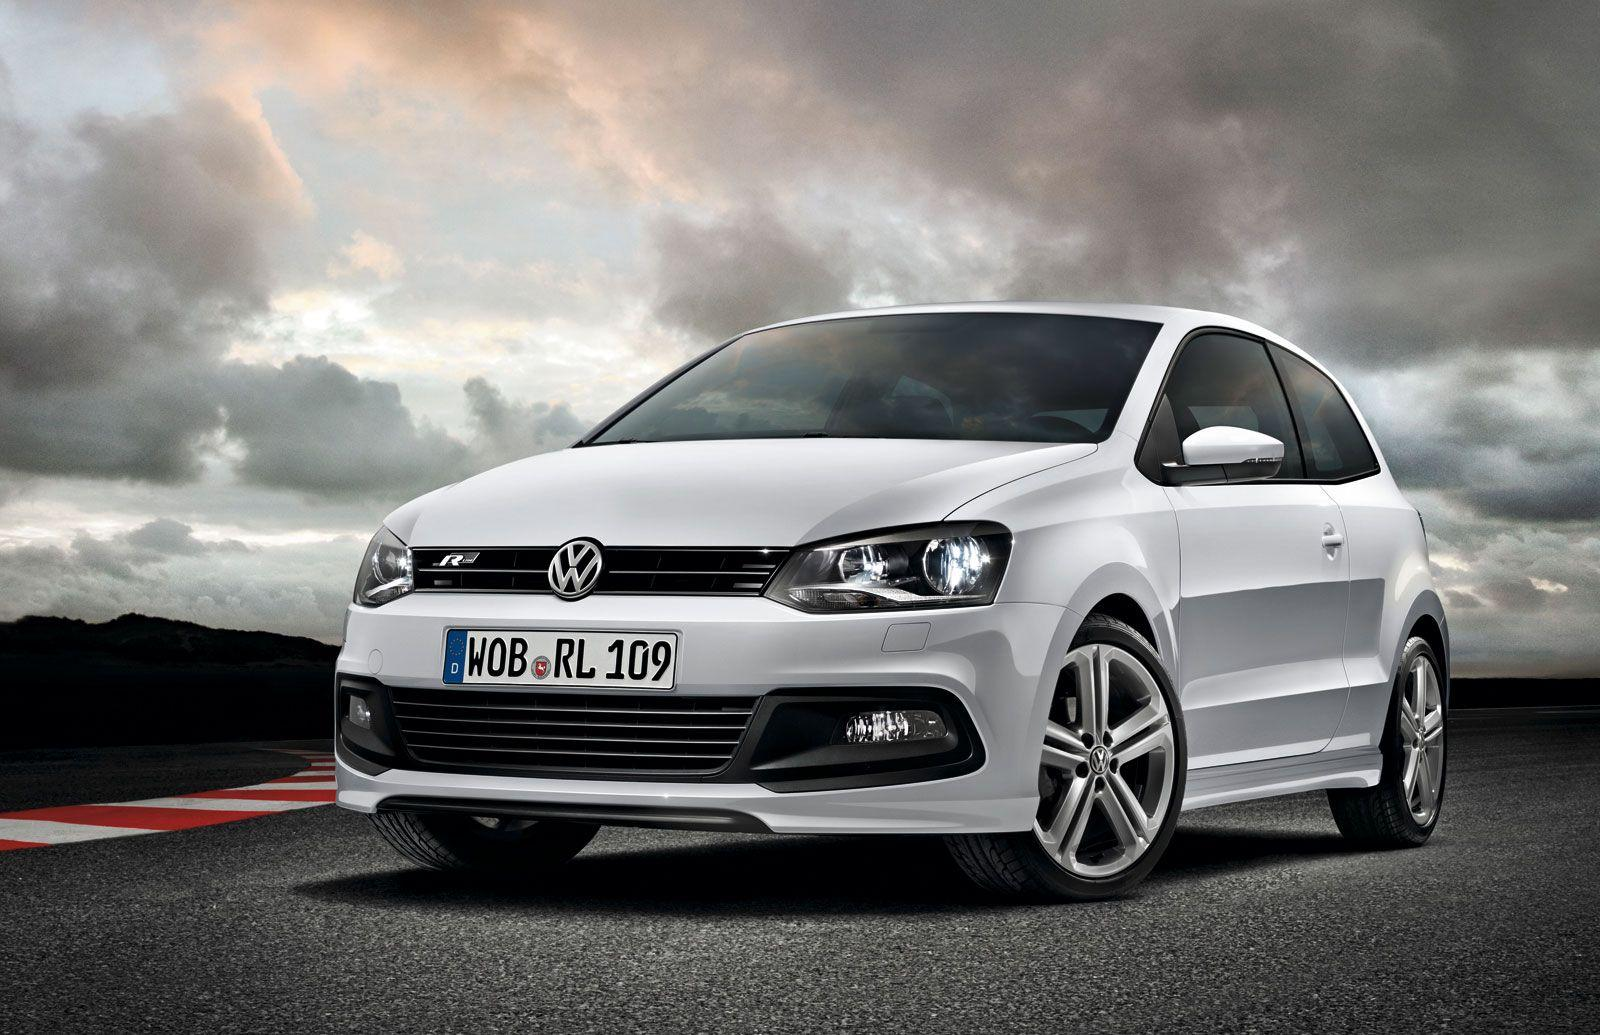 Sport Cars: Volkswagen Polo TSI R-Line hd Wallpapers 2012